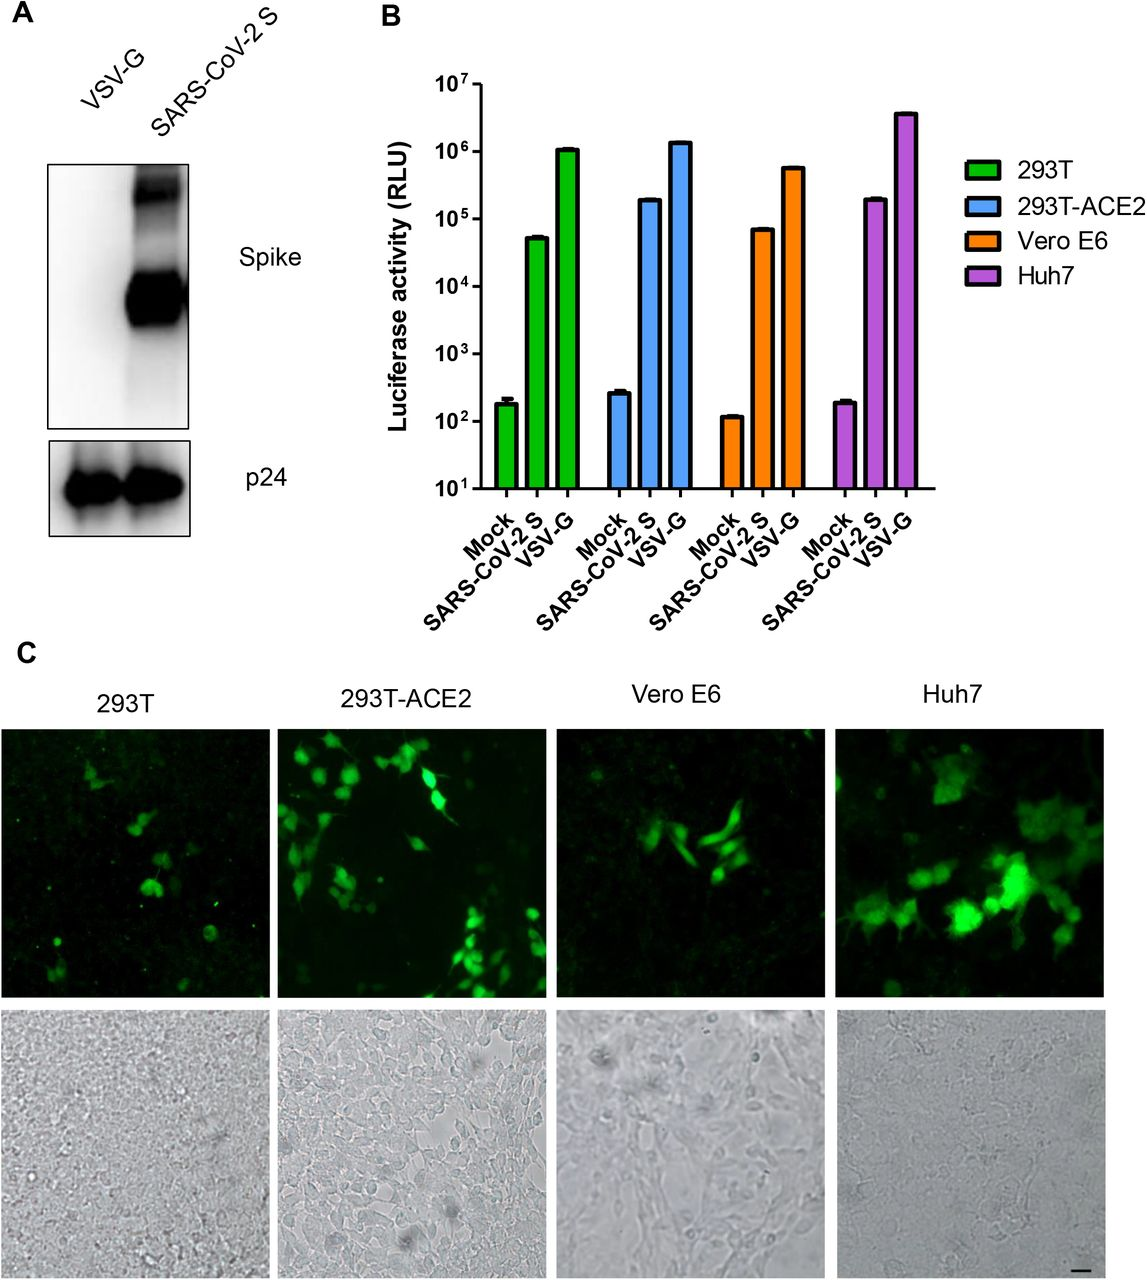 Characterization of SARS-CoV-2 Spike pseudovirus. A. Incorporation of SARS-CoV-2 S protein into pseudoviruses. VSV-G and S pseudoviruses were pelleted as described in Materials and Methods and subjected to SDS-PAGE, immunoblotted with anti-Spike and <t>HIV</t> <t>p24</t> as control. B. S pseudovirus transduction of 293T, 293T-ACE2, Vero E6 and Huh 7 cells. 293T, 293T-ACE2, Vero E6 and Huh 7 cells were mock infected or infected with S pseudovirus, VSV-G pseudovirus expressing NanoLuc luciferase. At 48 h post transduction, luciferase activity was measured. Values are mean ± SD and are representative of three independent experiments. C. 293T, 293T-ACE2, Vero E6 and Huh 7 cells transduced with S pseudovirus expressing GFP. Bright field was included to show the presence of cells. Bar, 20μm.